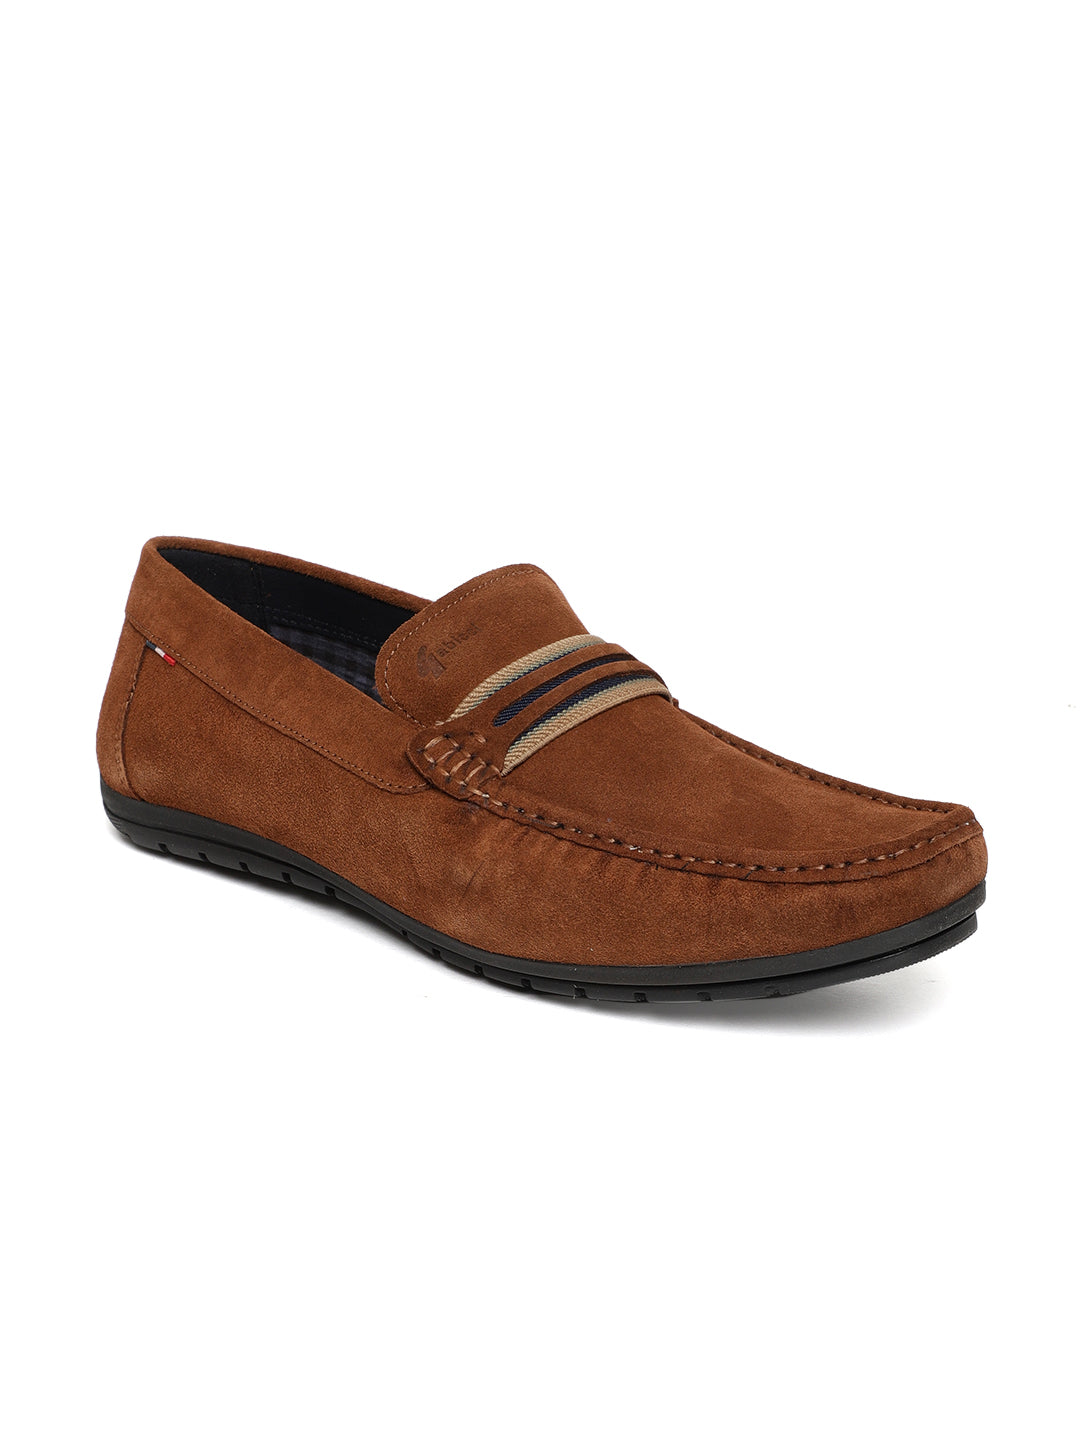 OLLIE CAPTAIN LOAFER (TAN)